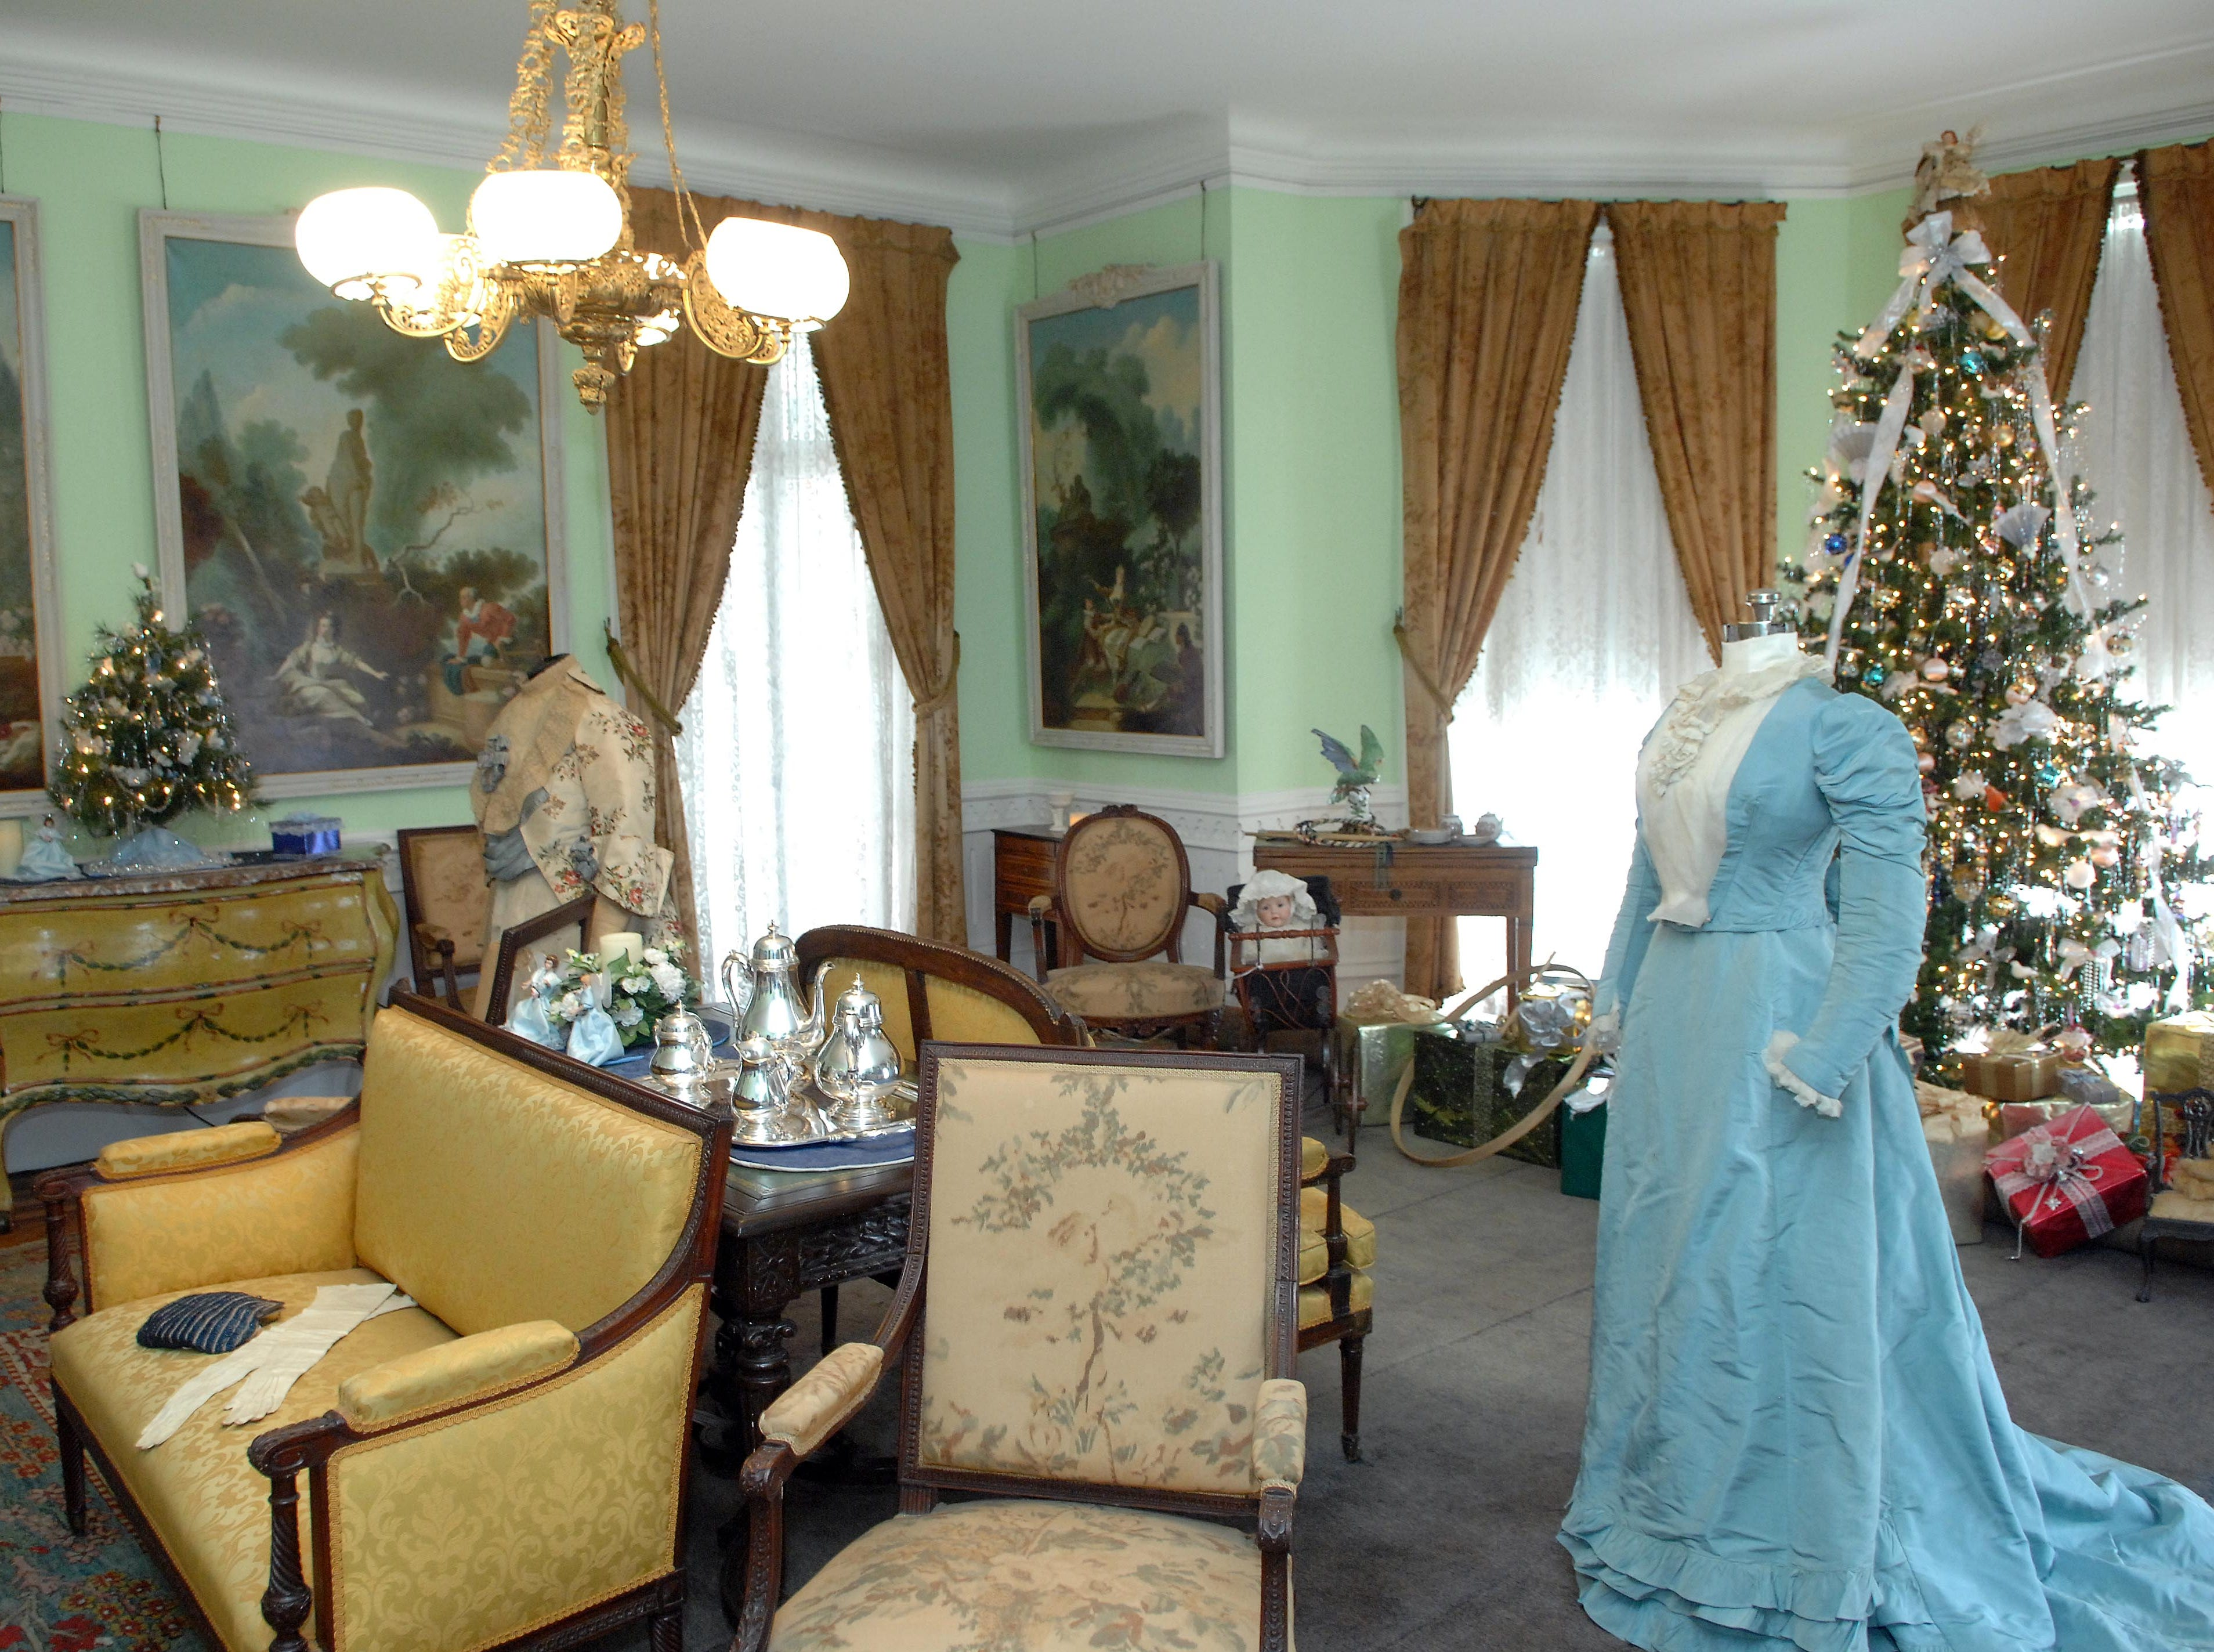 The Victorian Christmas open house at Ringwood Manor on Nov. 30, 2015 featured displays of vintage clothing.